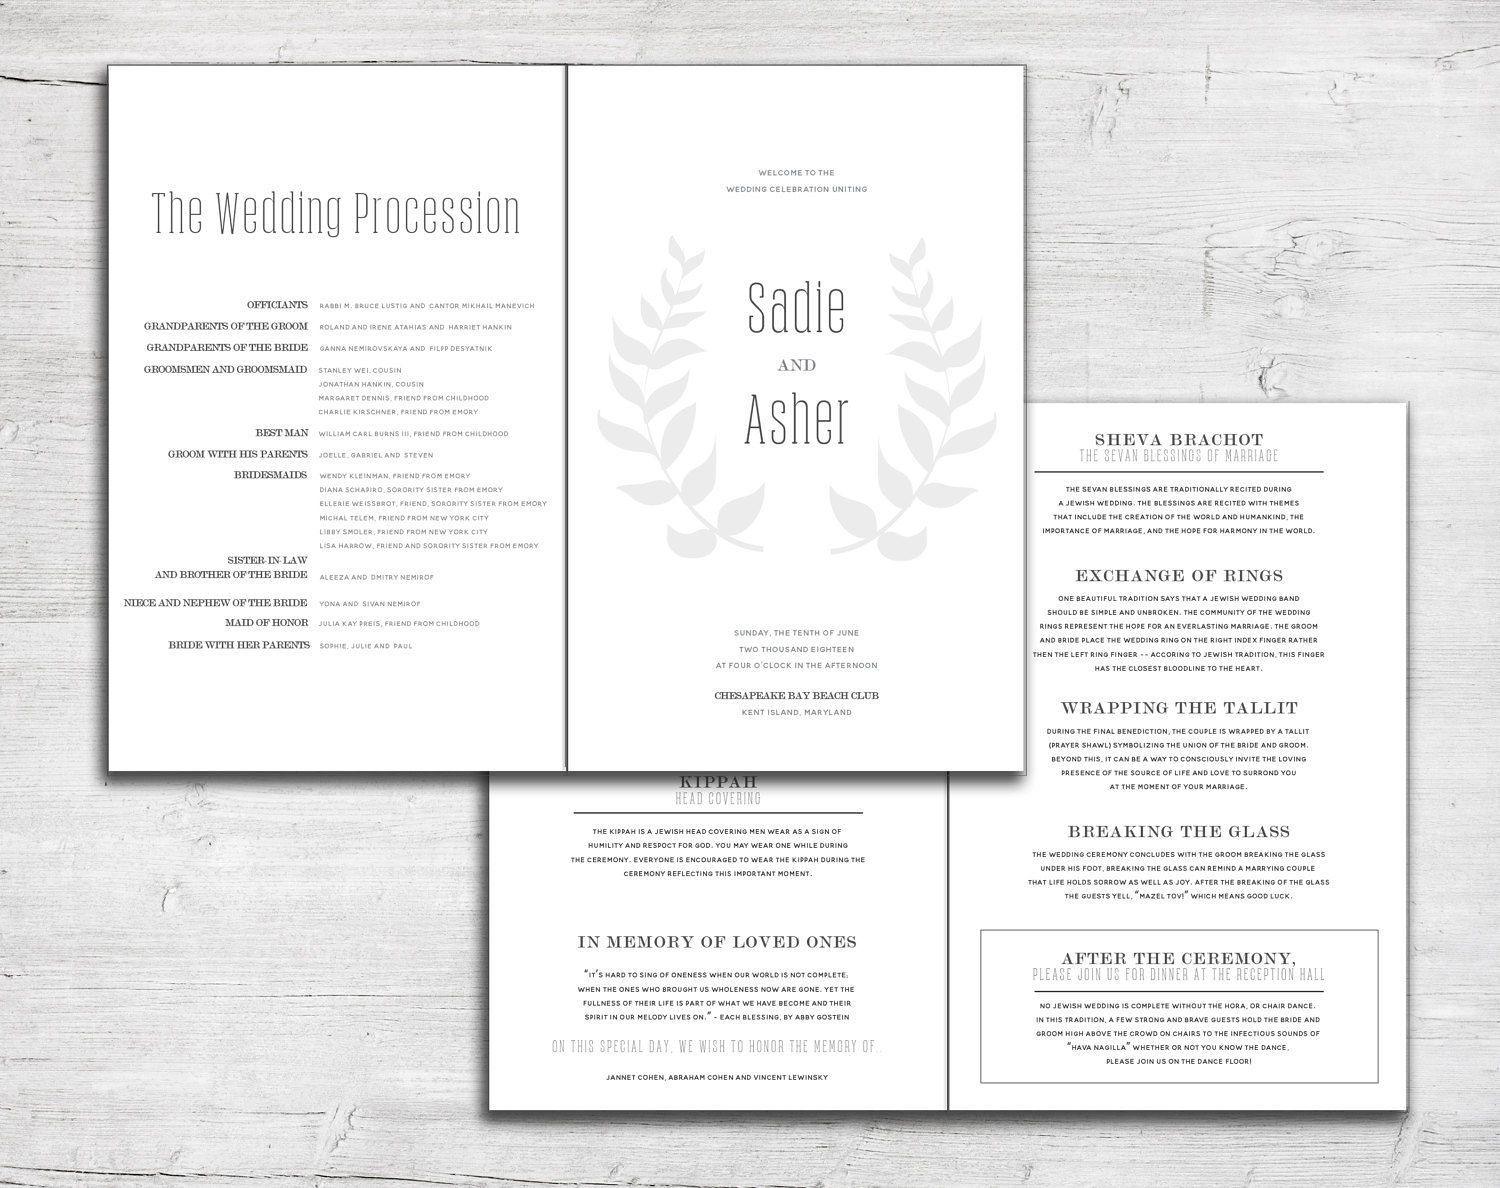 Leaf Folded Wedding Program For Jewish Marriage Ceremony